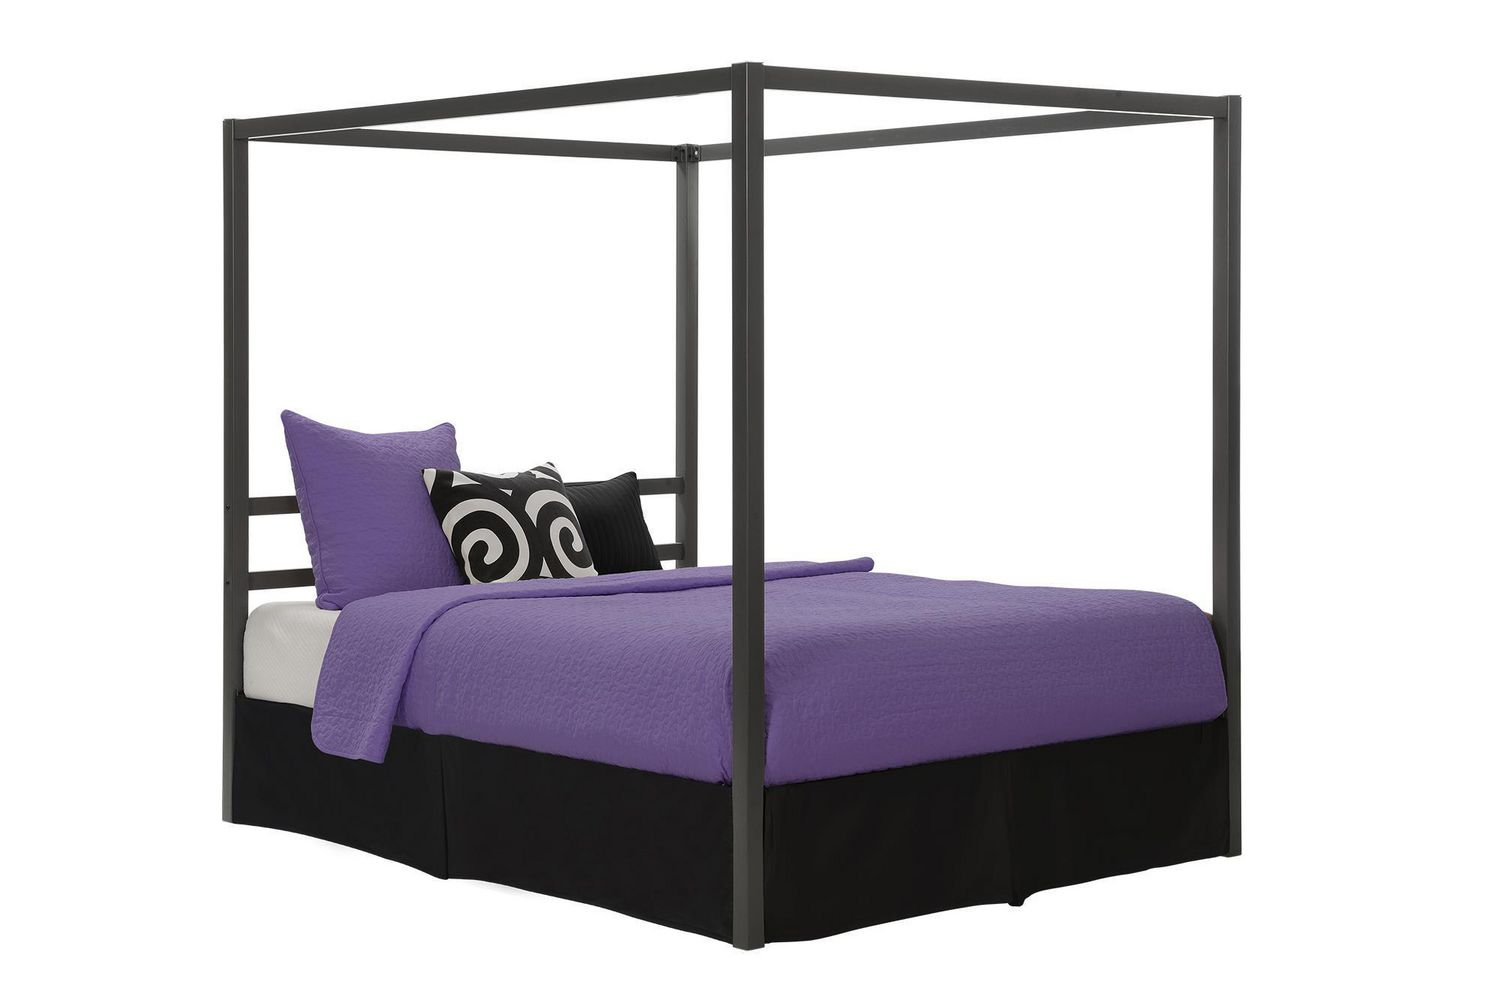 359afa66aa7b DHP Modern Canopy Bed - image 1 of 5 zoomed image